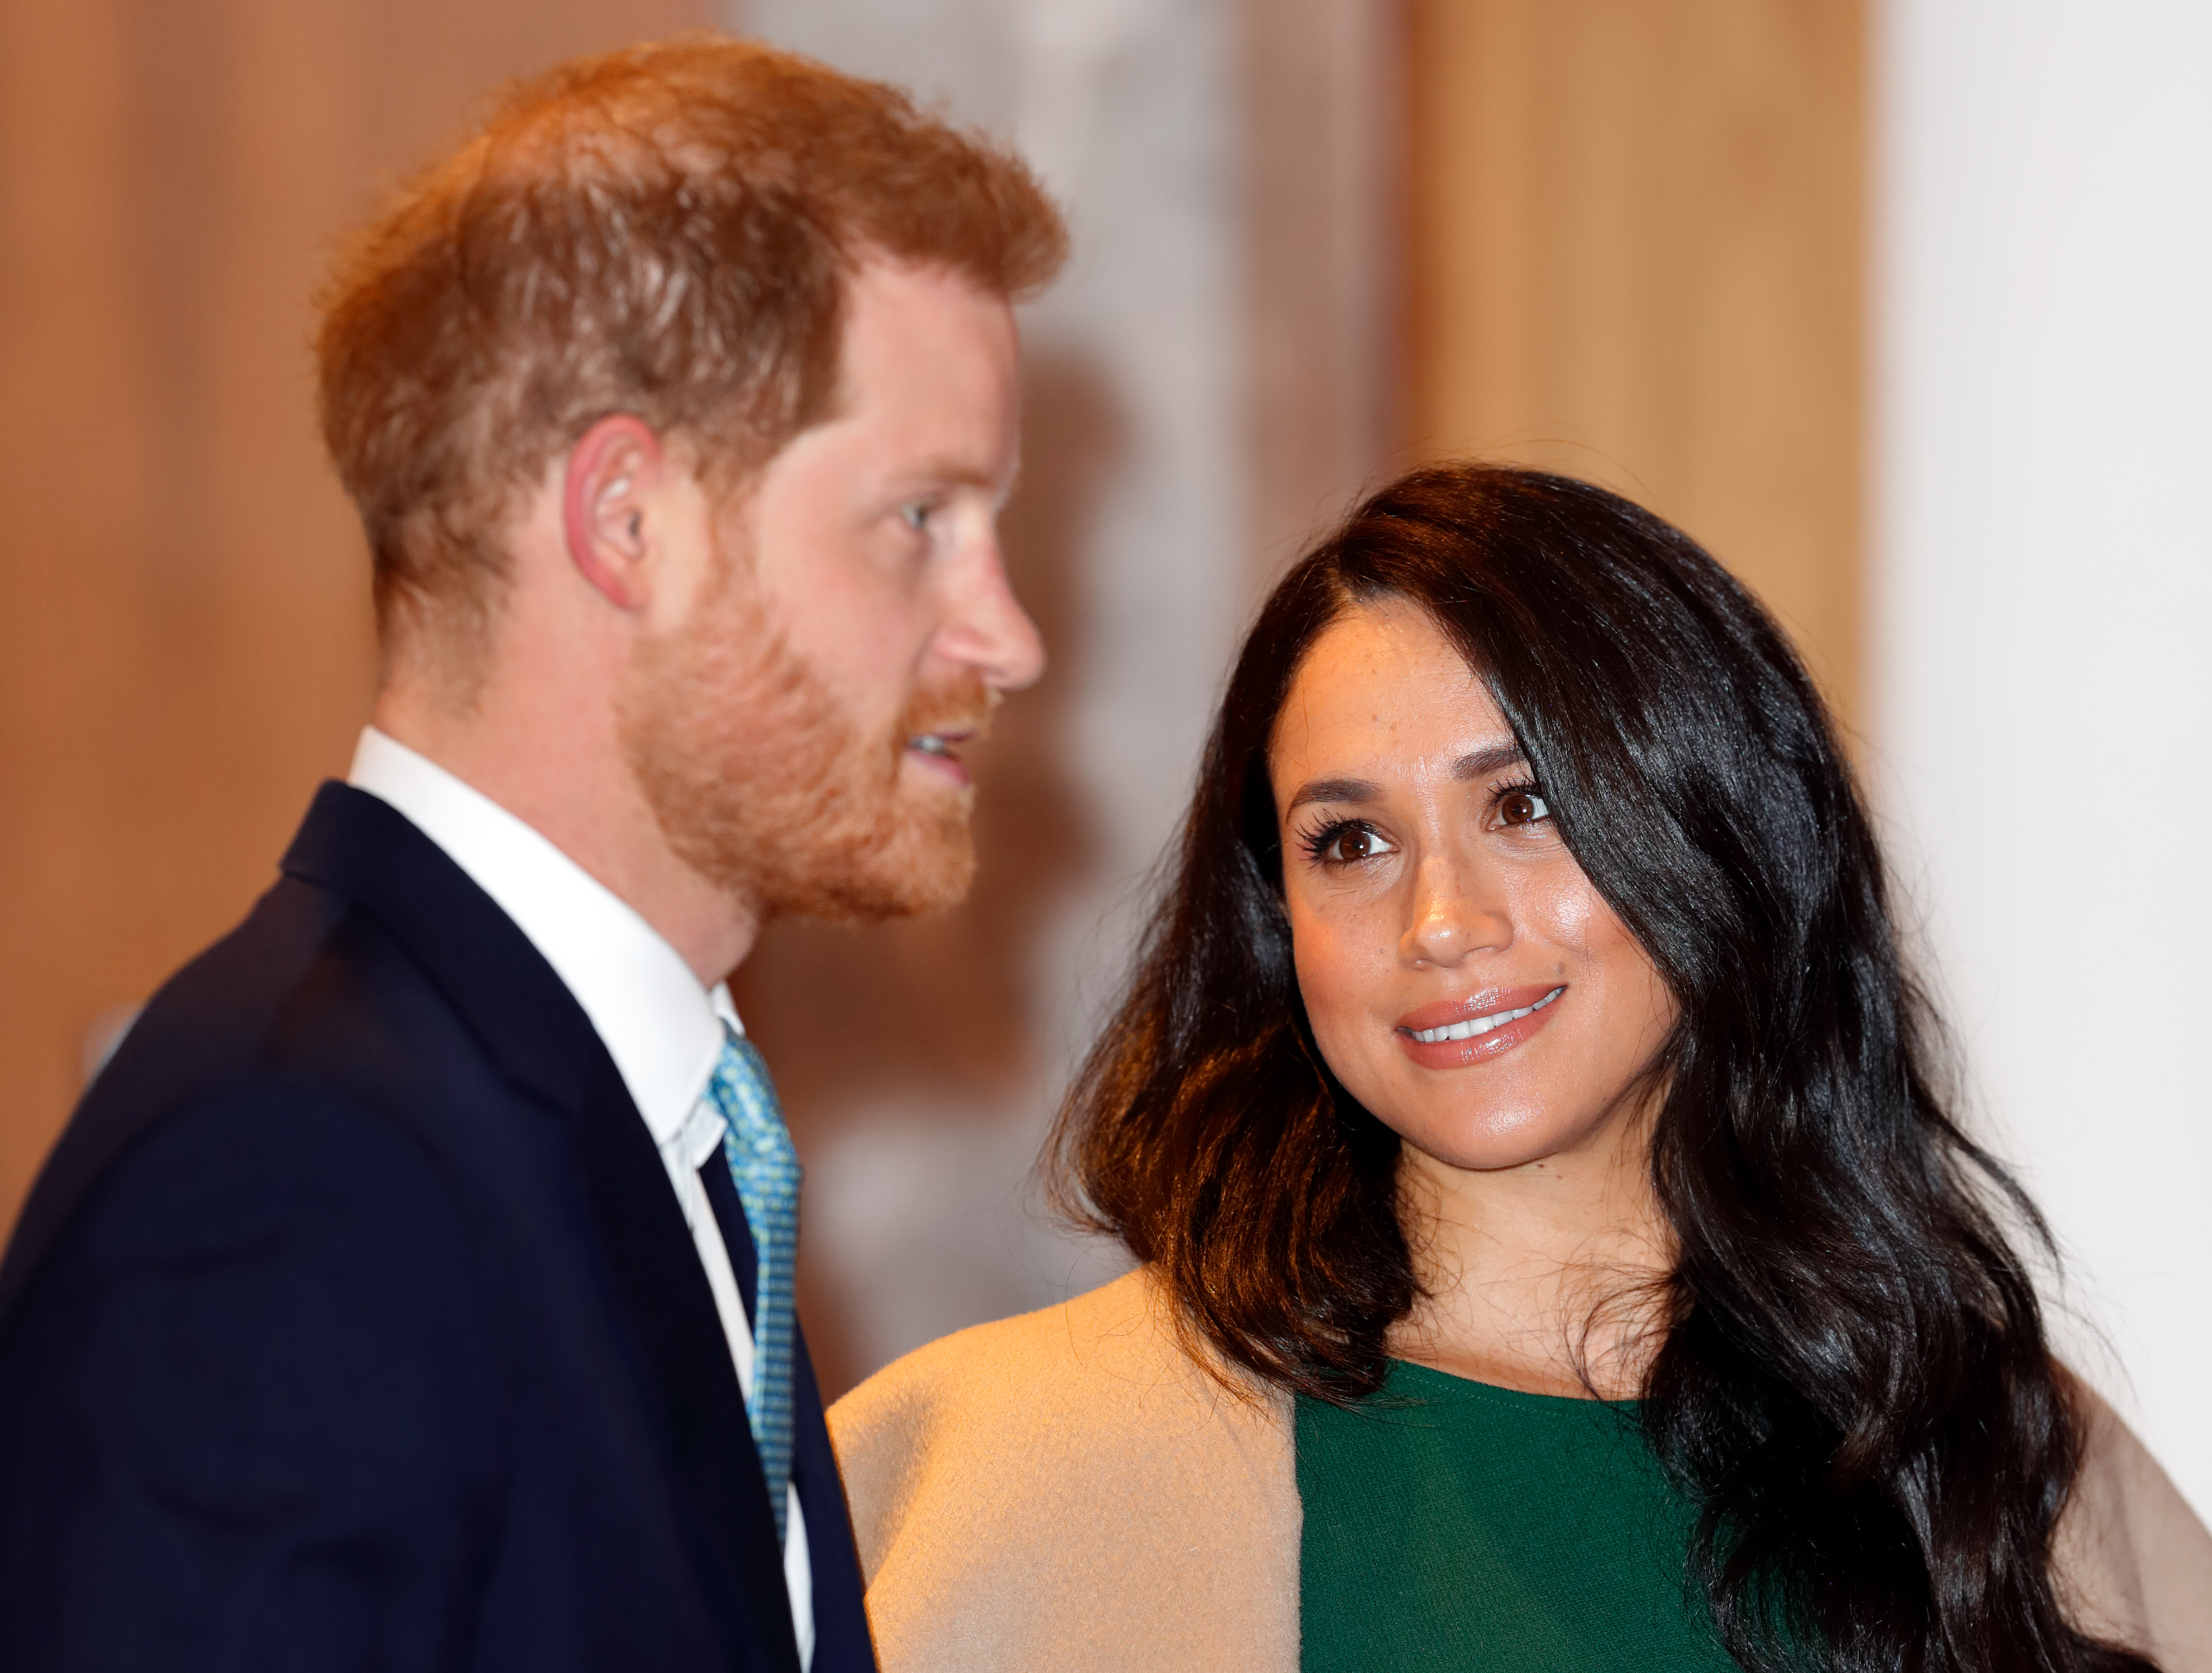 Meghan and Harry are taking a break from their royal duties. This isn't surprising.